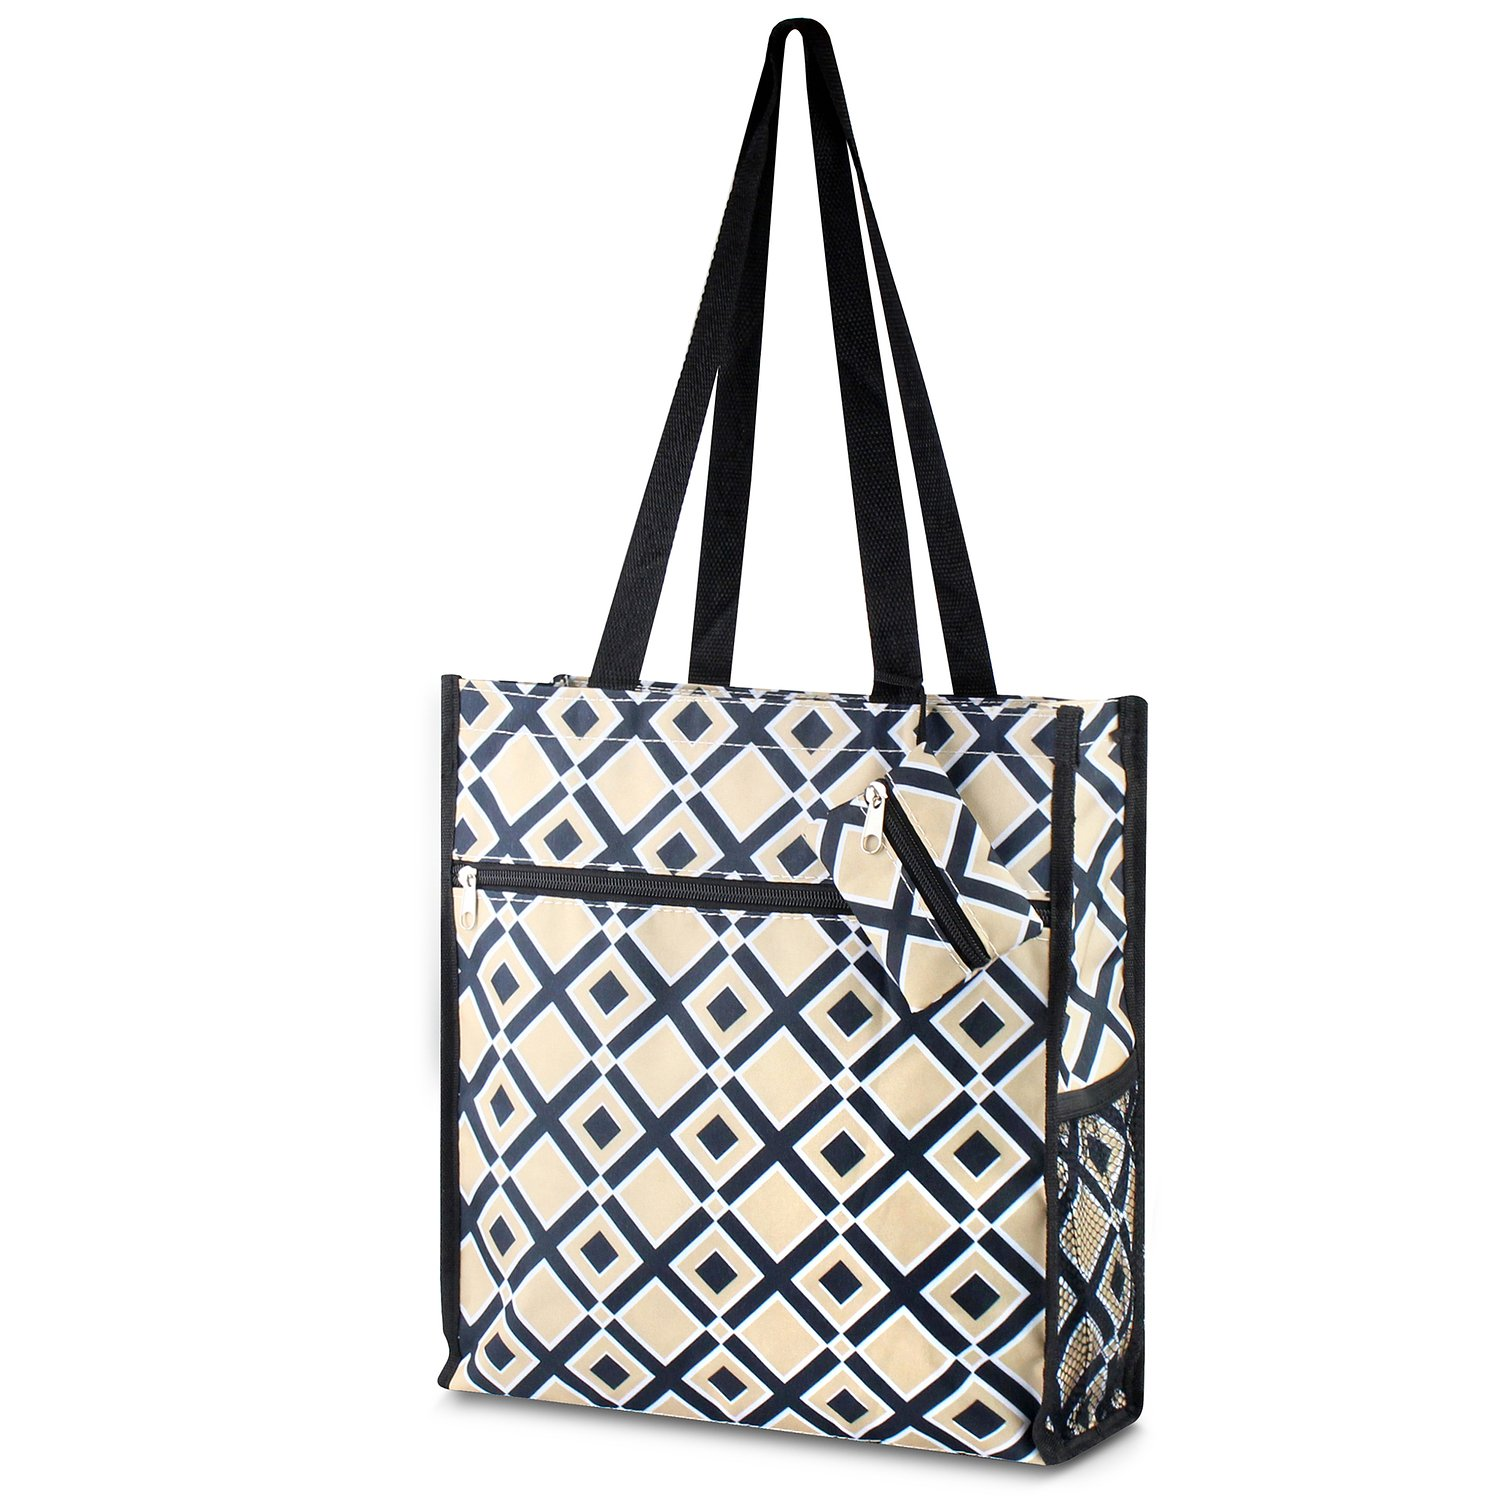 Multi-color Music Note Zodaca Lightweight All Purpose Travel Tote Bag